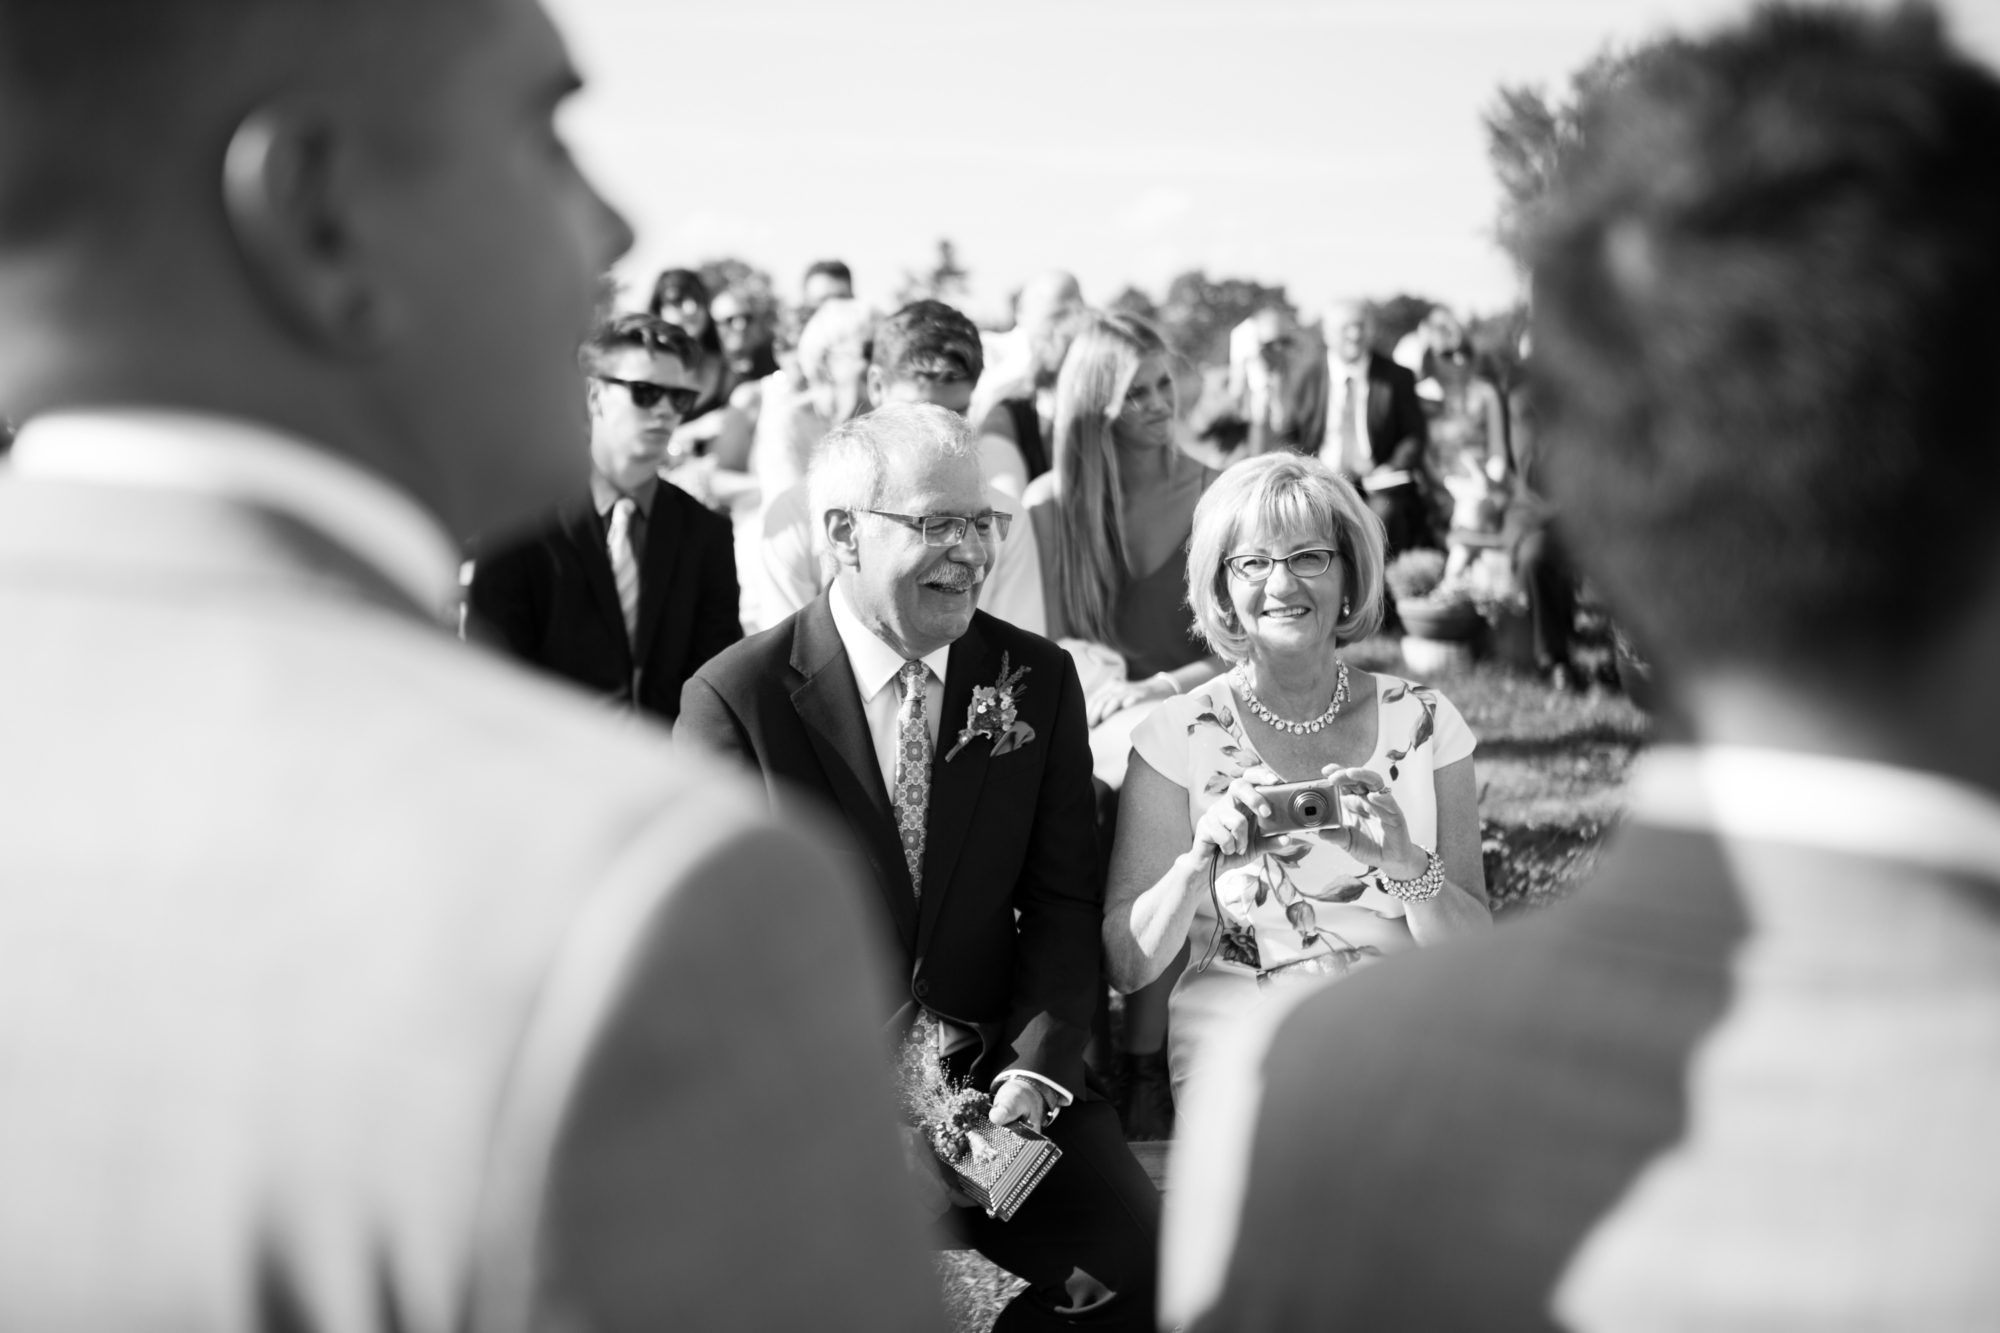 Parents Black and White Ceremony South Pond Farms Zsuzsi Pal Photography Wedding